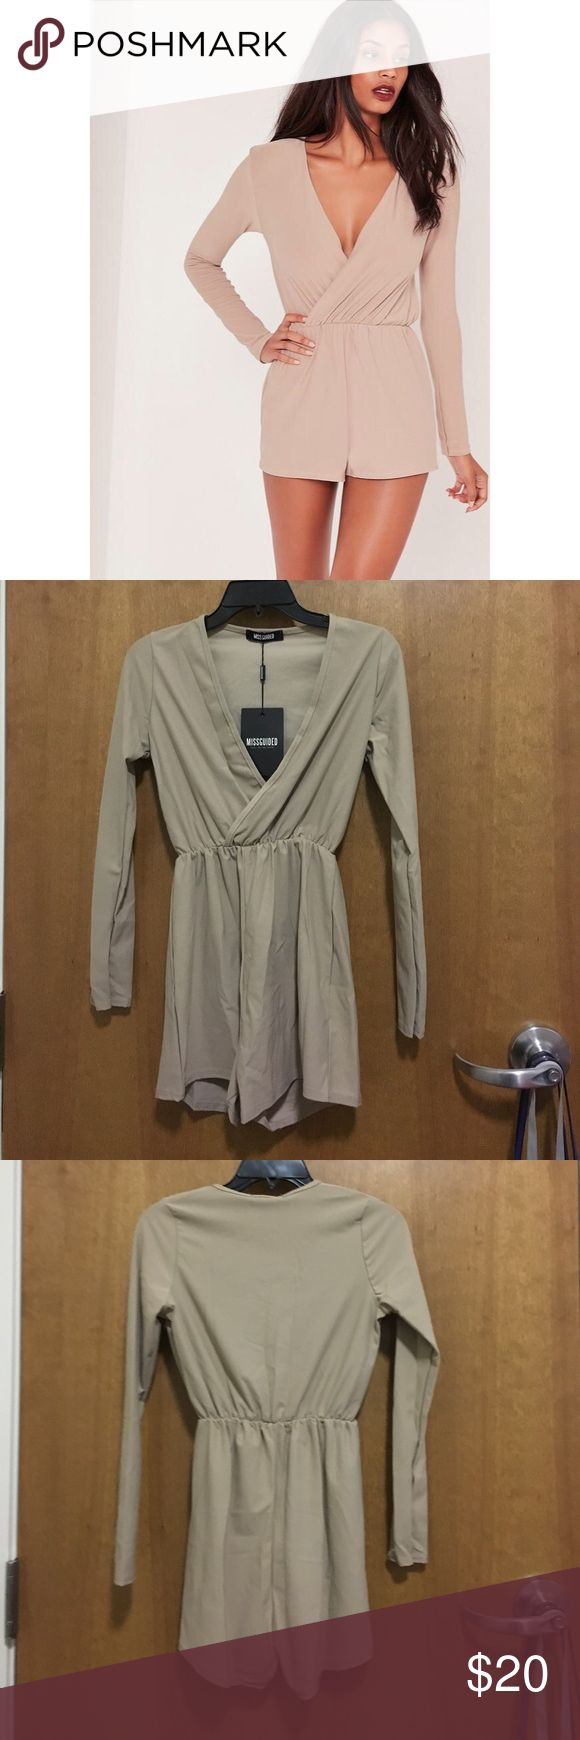 Nude long sleeve wrap romper size 2 BNWT Size 2 wrap playsuit/romper runs a liiiiitle small- brand new never worn Missguided Dresses